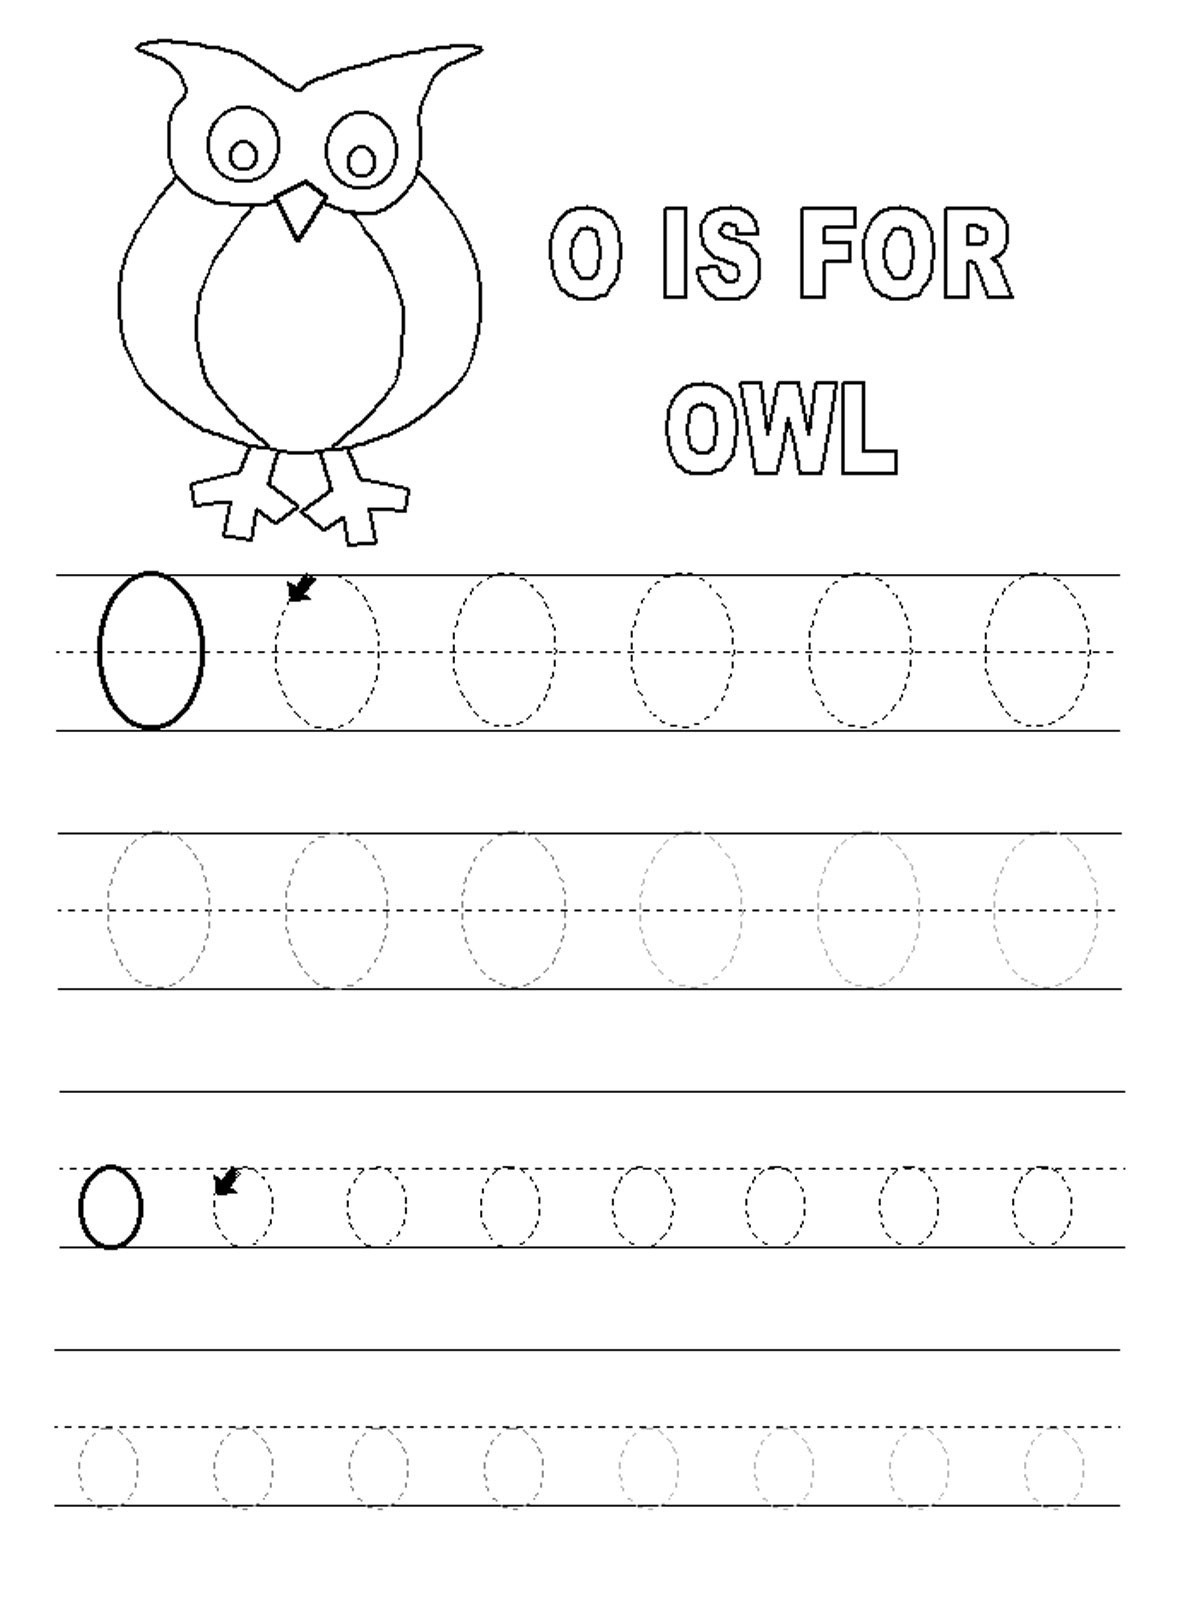 Ou Ow Worksheets 3rd Grade Worksheet with Letter Printable Worksheets and Activities